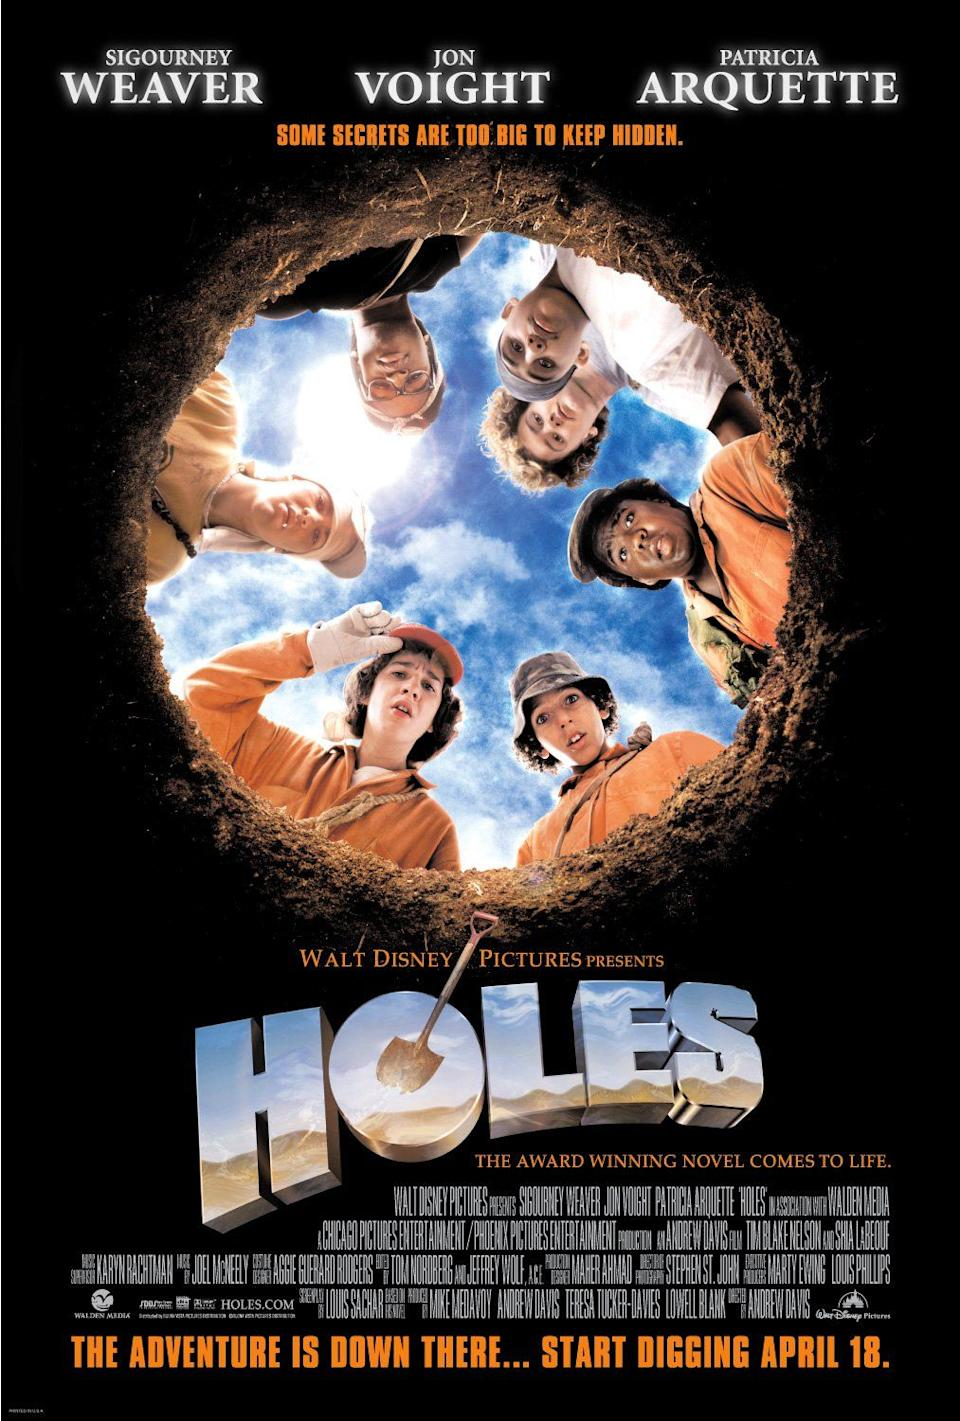 A poster for Disney's Holes. (Disney)